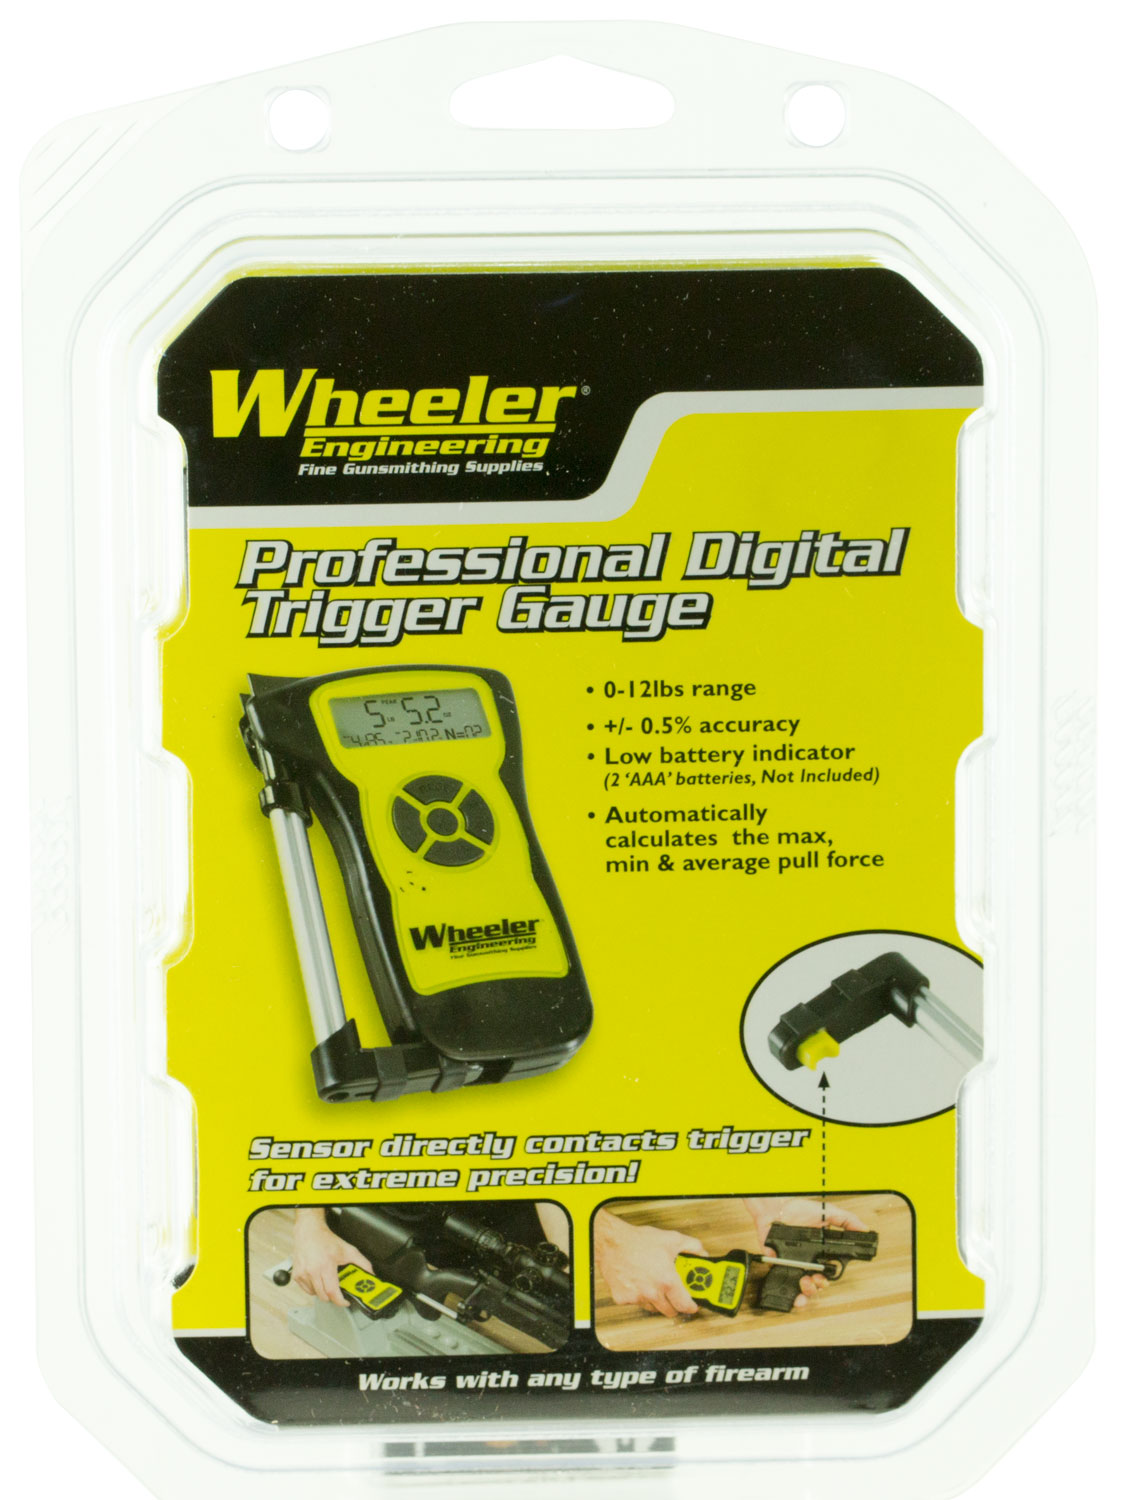 Wheeler 710904 Professional Digital Trigger Gauge Professional Digital Trigger Gauge